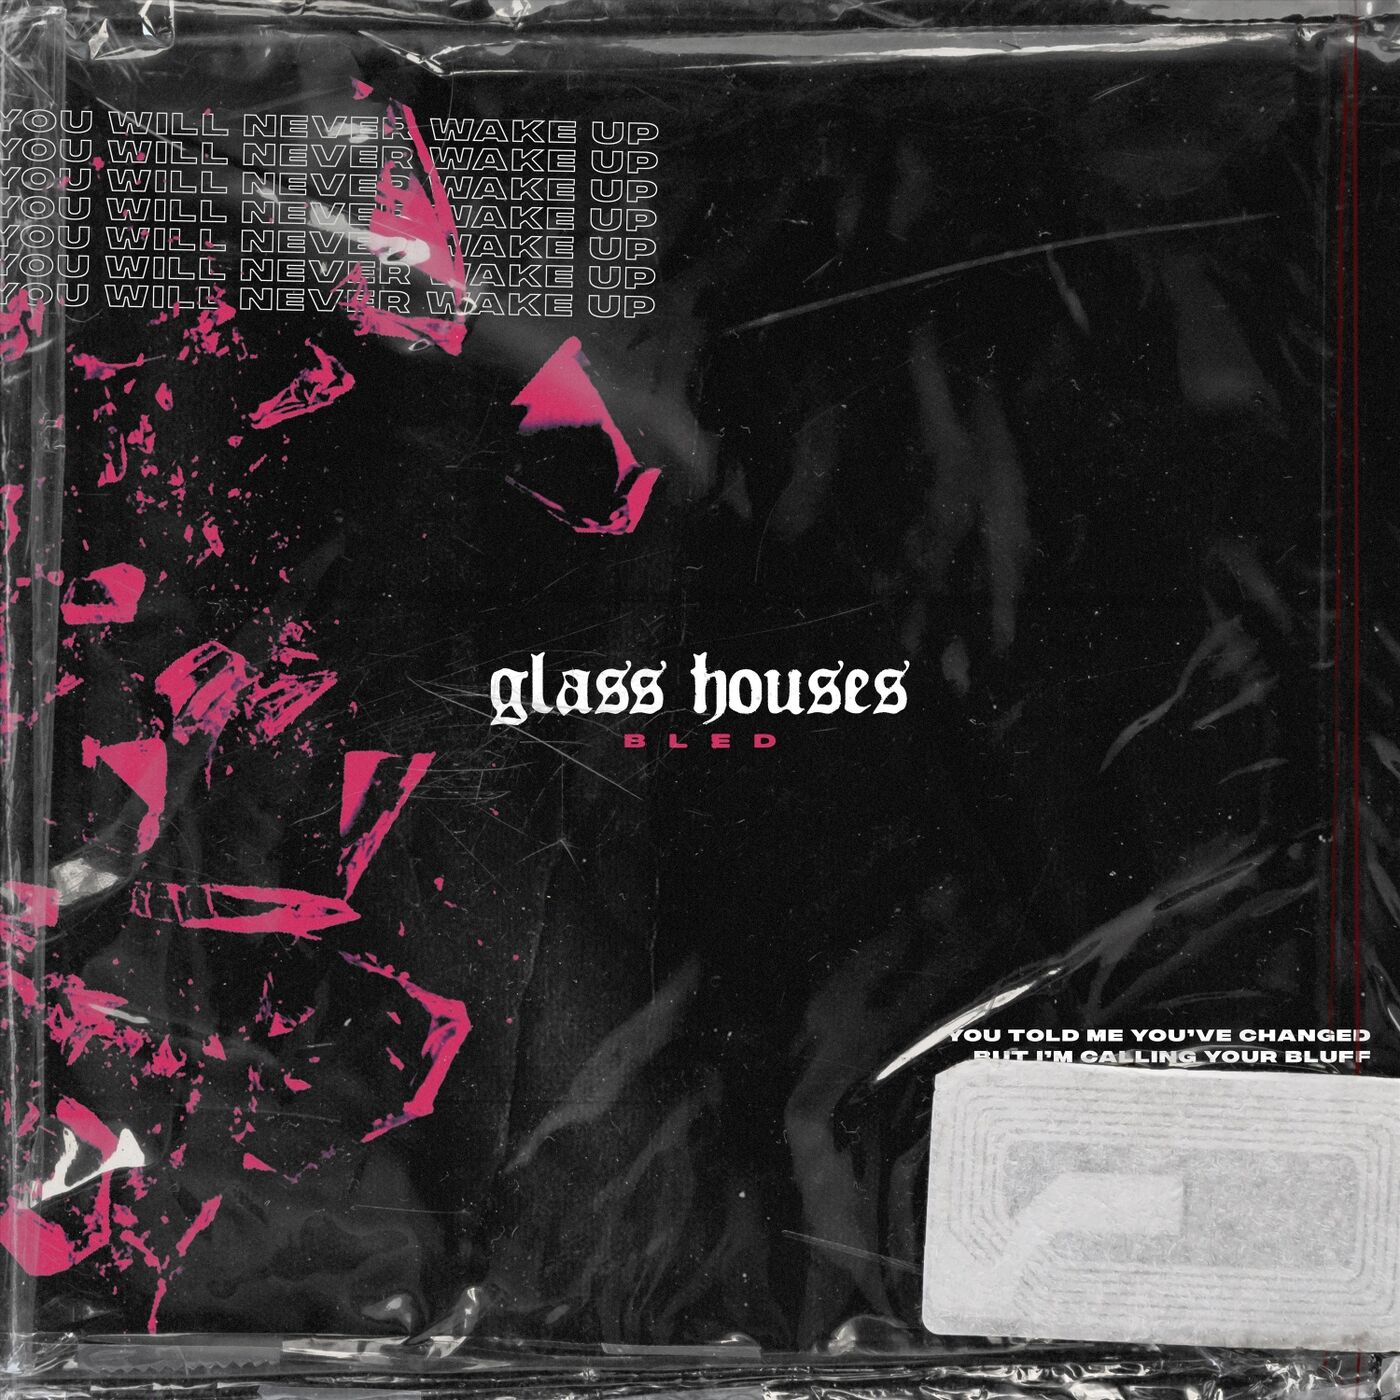 Glass Houses - Bled [single] (2020)